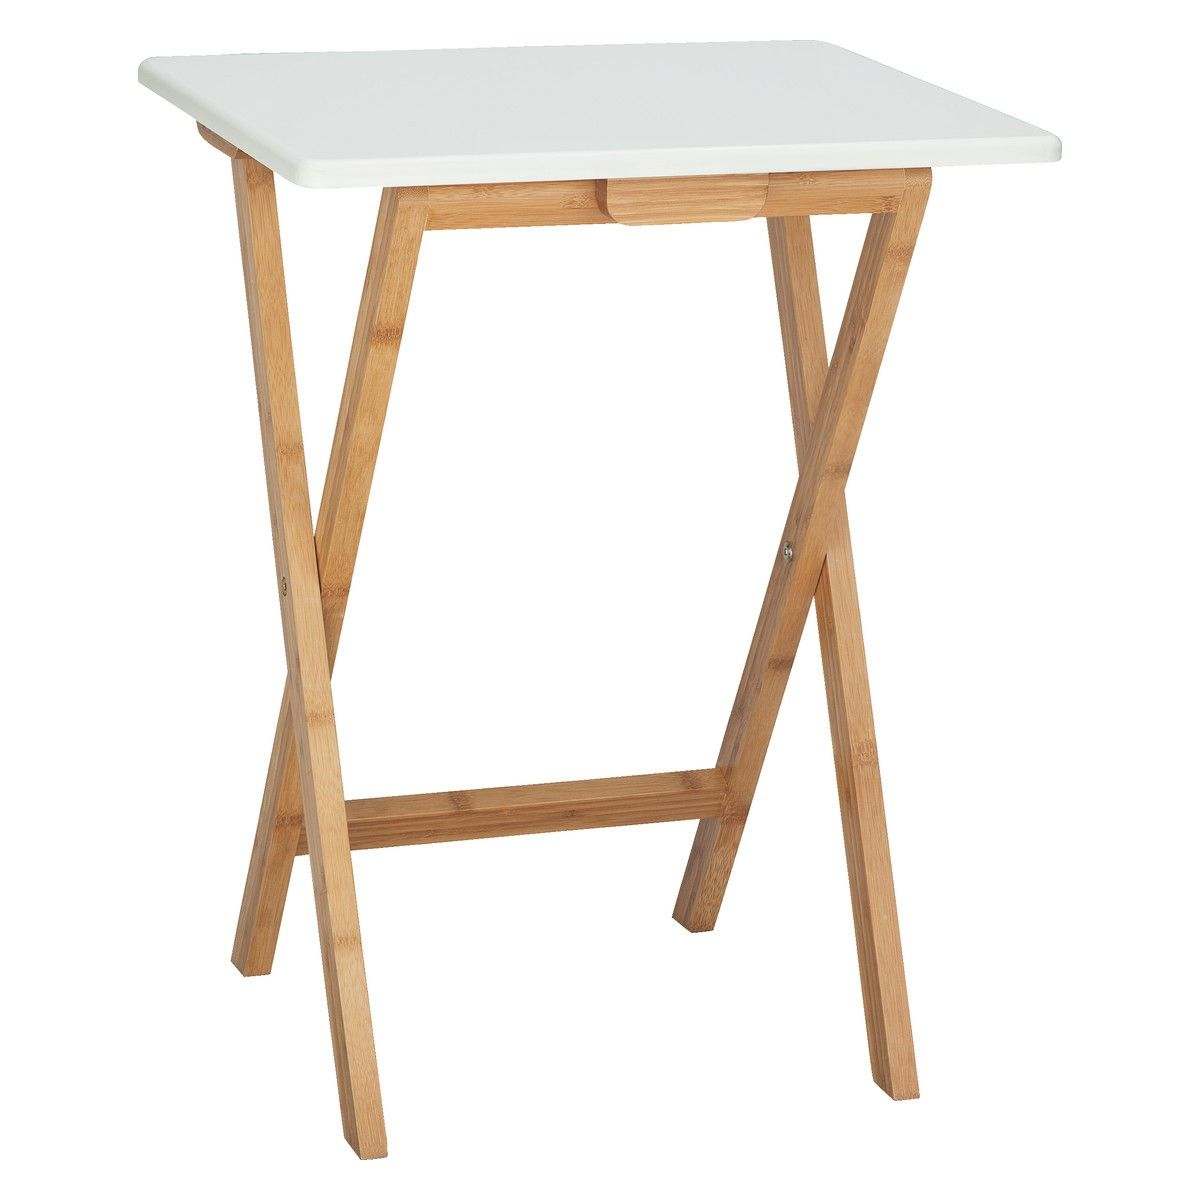 Bon DREW Bamboo And White Lacquer Folding Side Table | Buy Now At Habitat UK